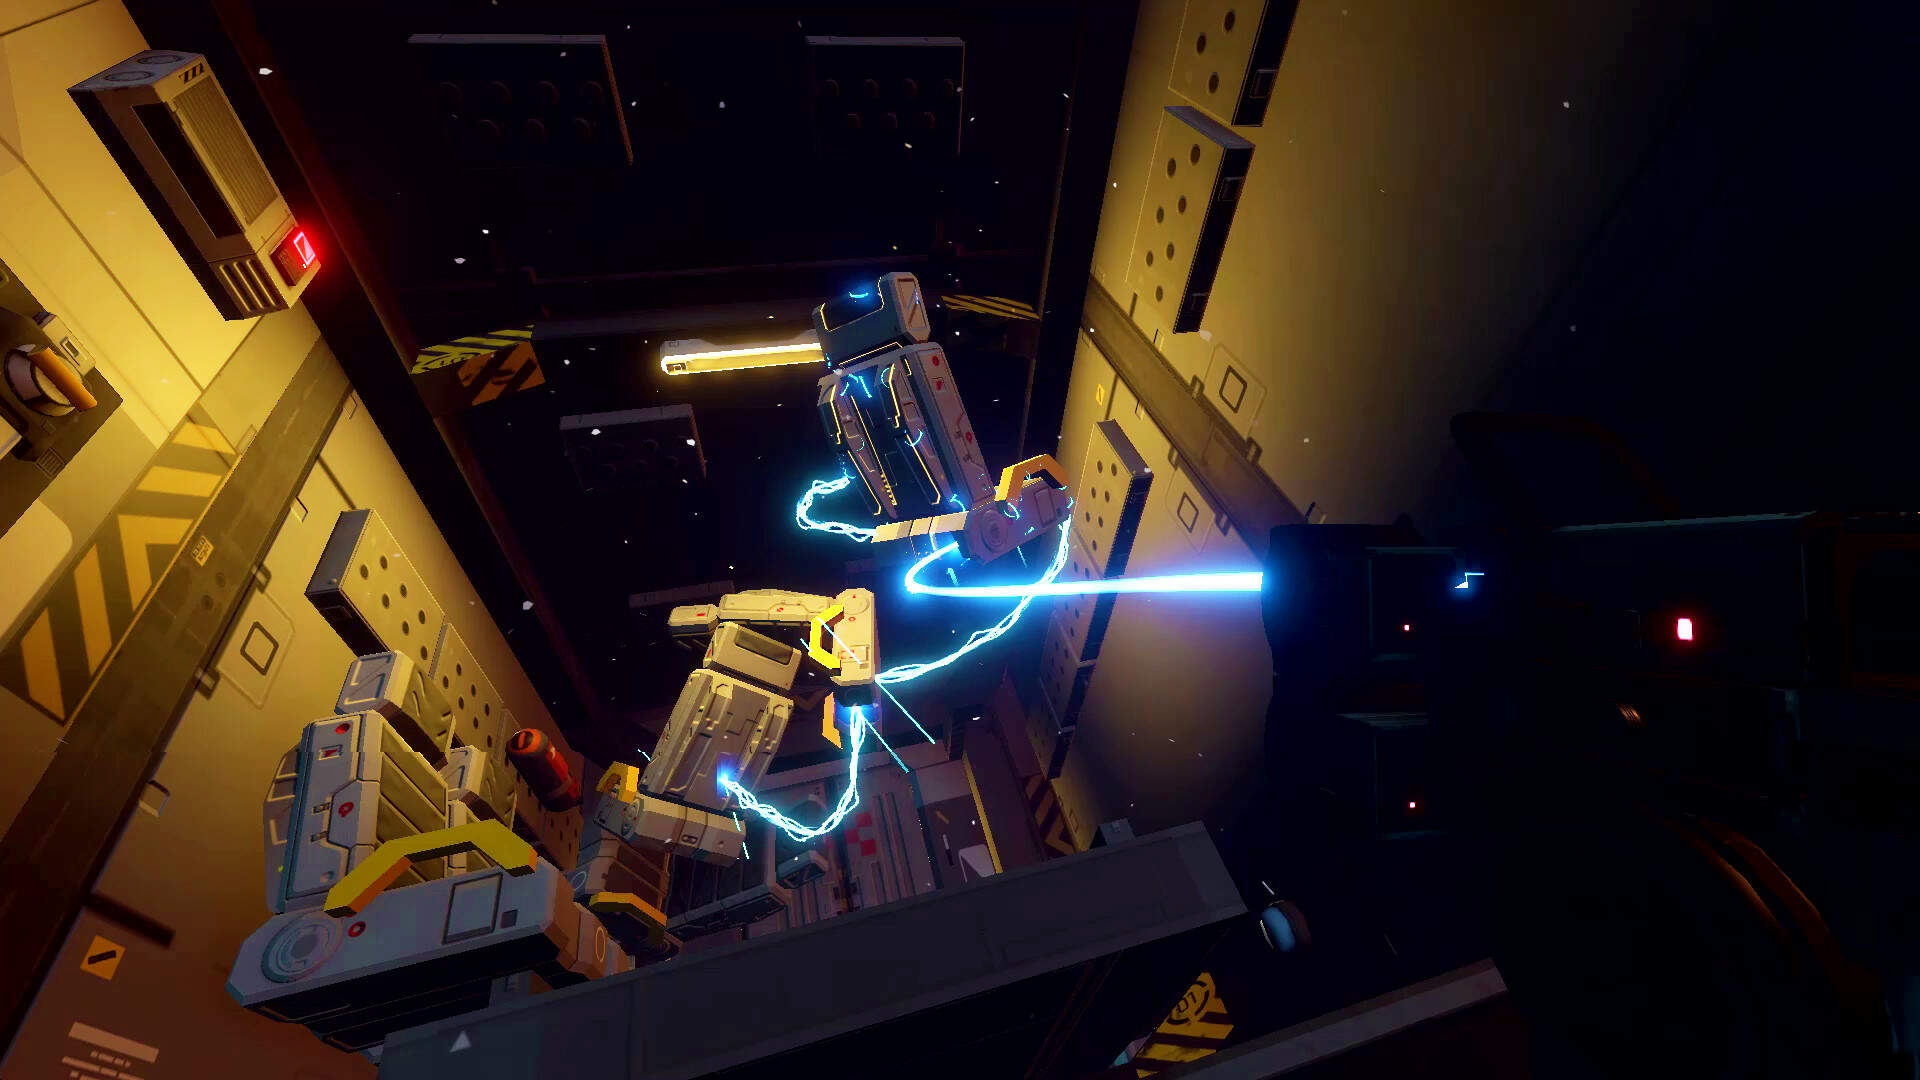 Hardspace: Shipbreaker's Dark Satire About Labor Among the Stars Makes It Worth Playing